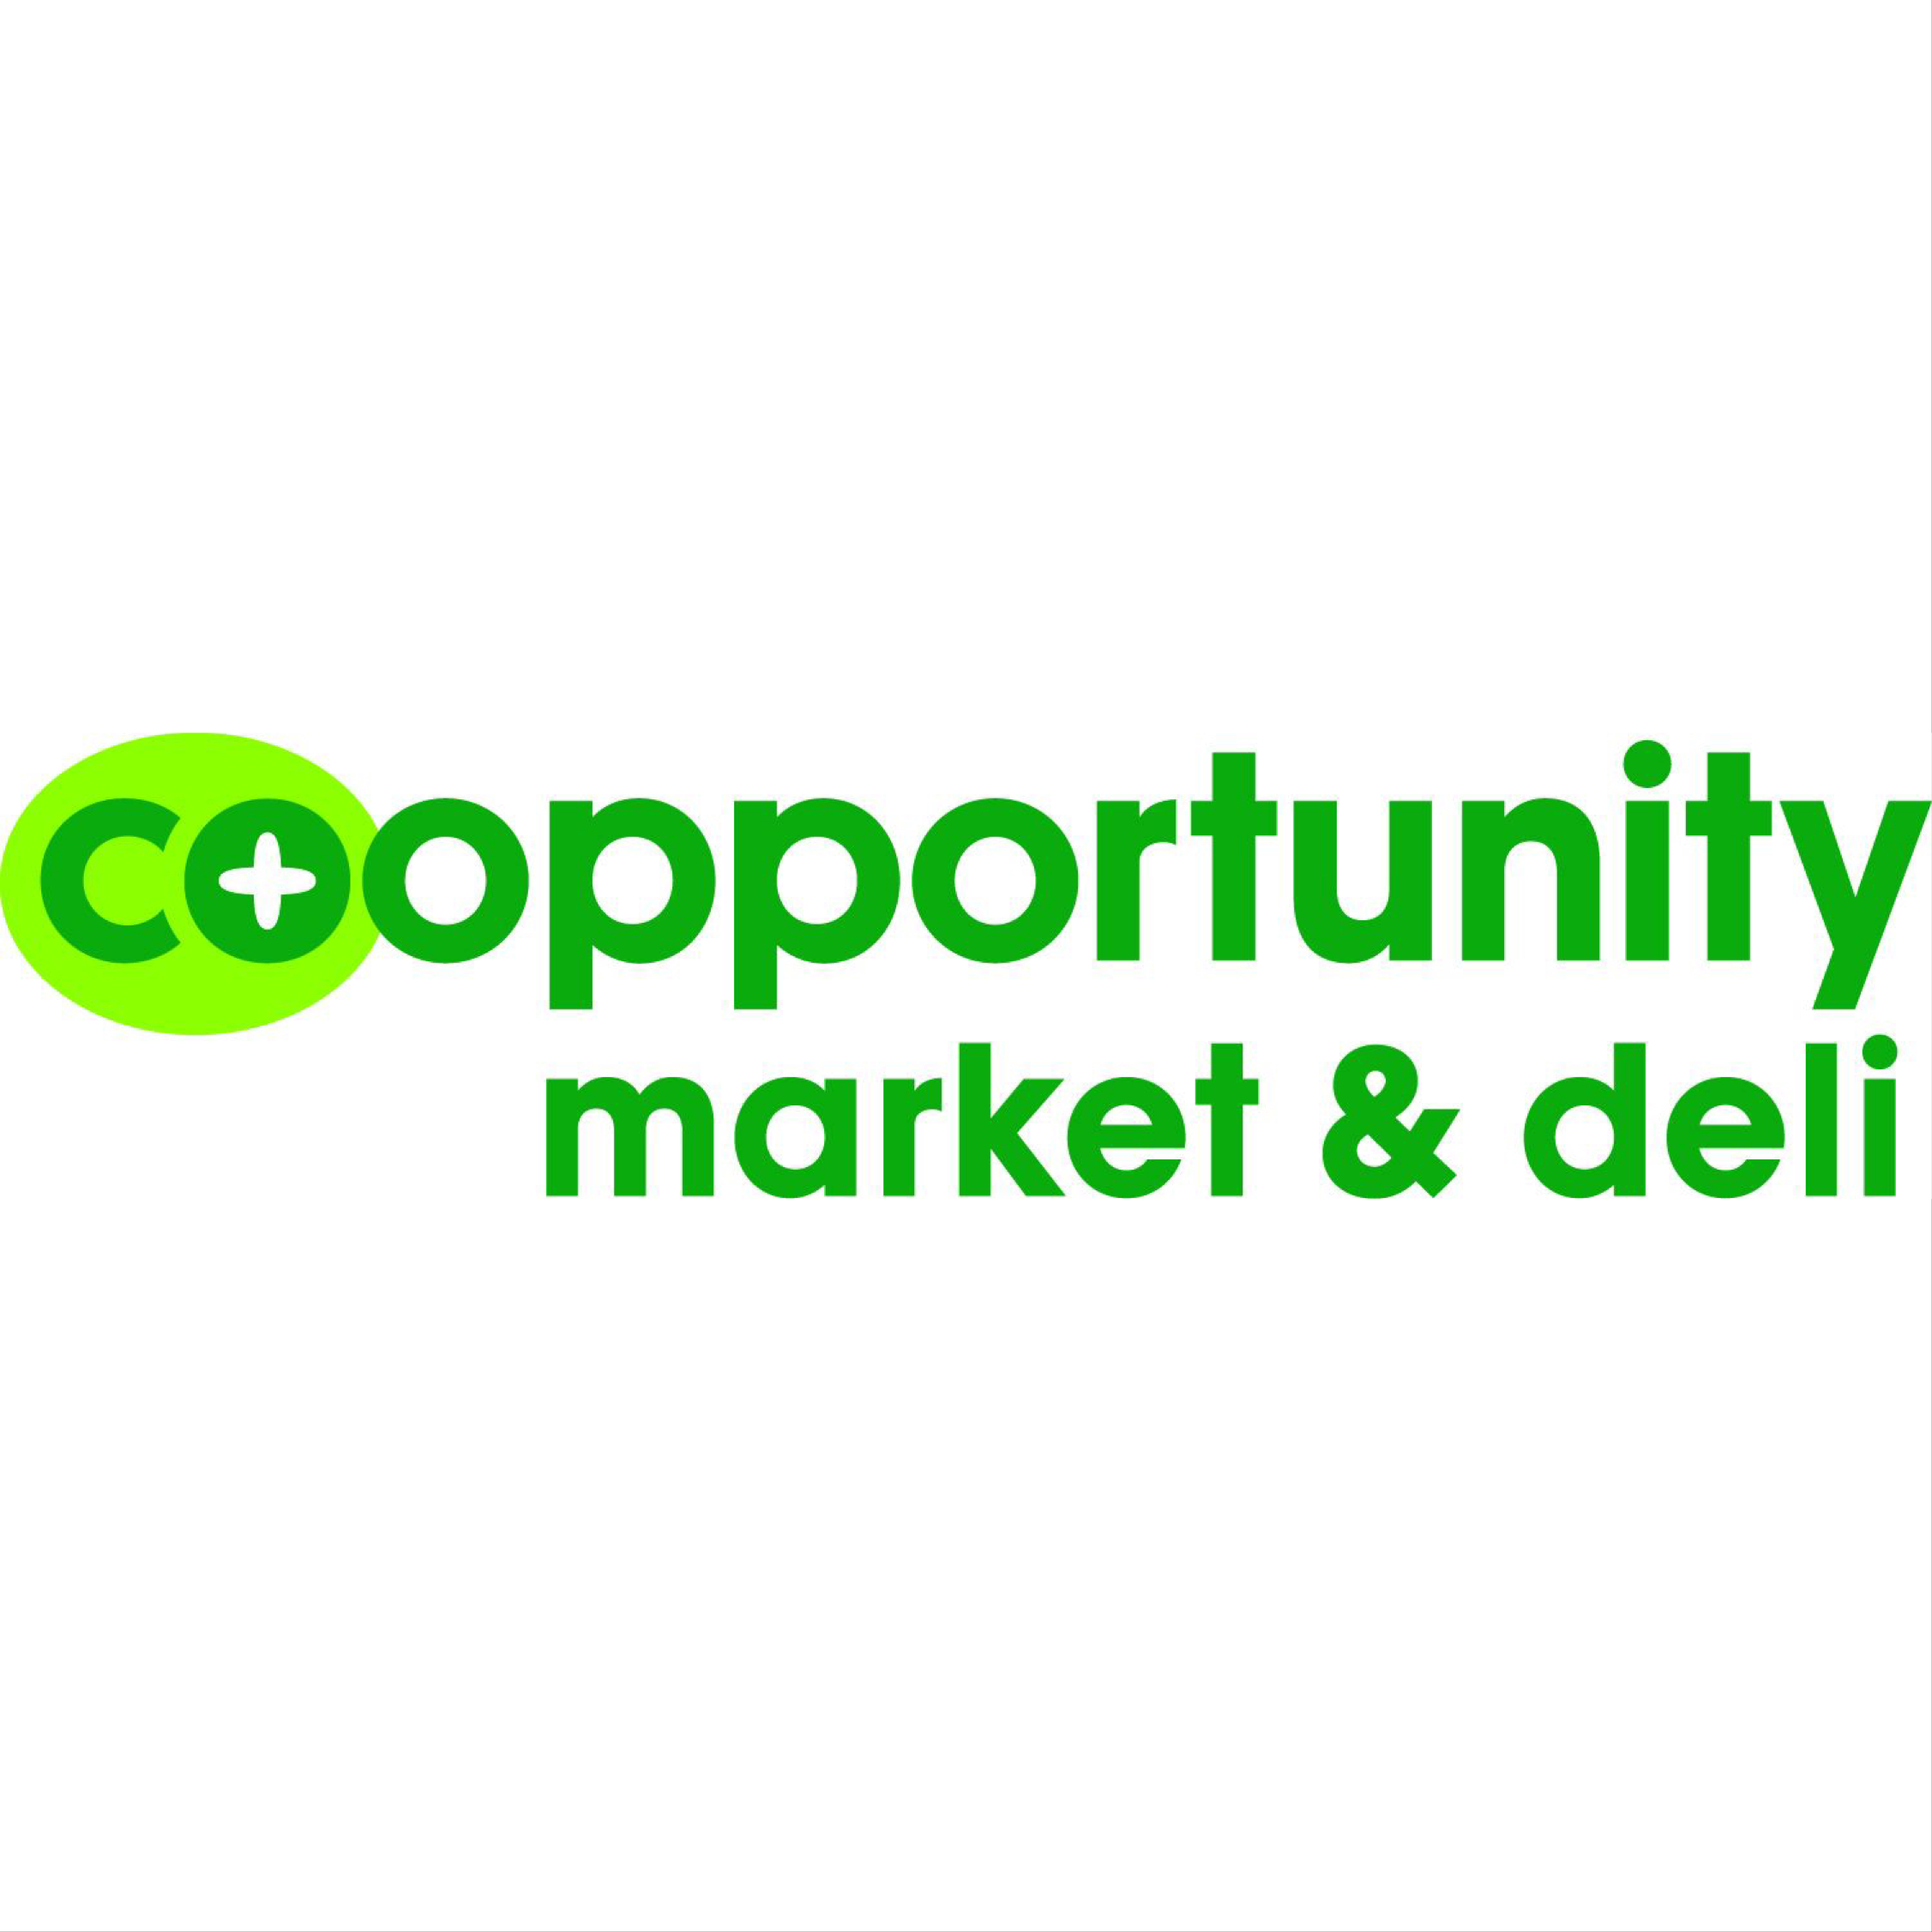 coopportunity